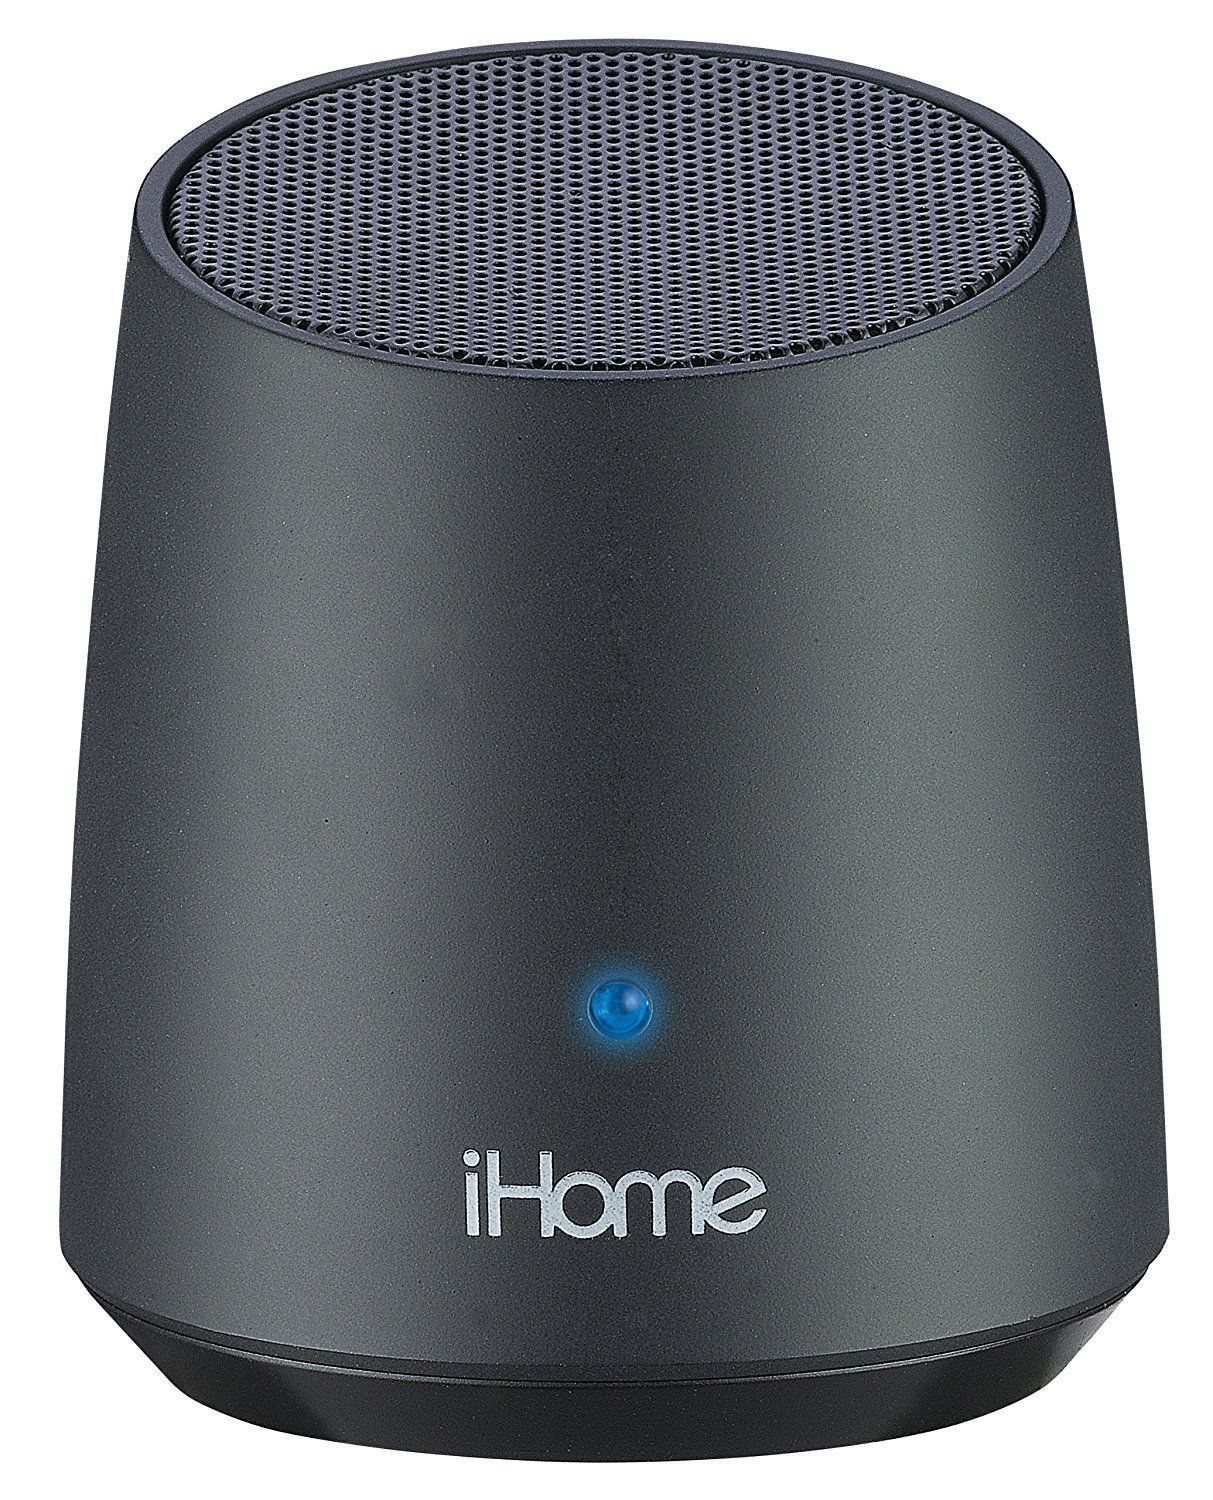 ihome portable bluetooth stereo speakers